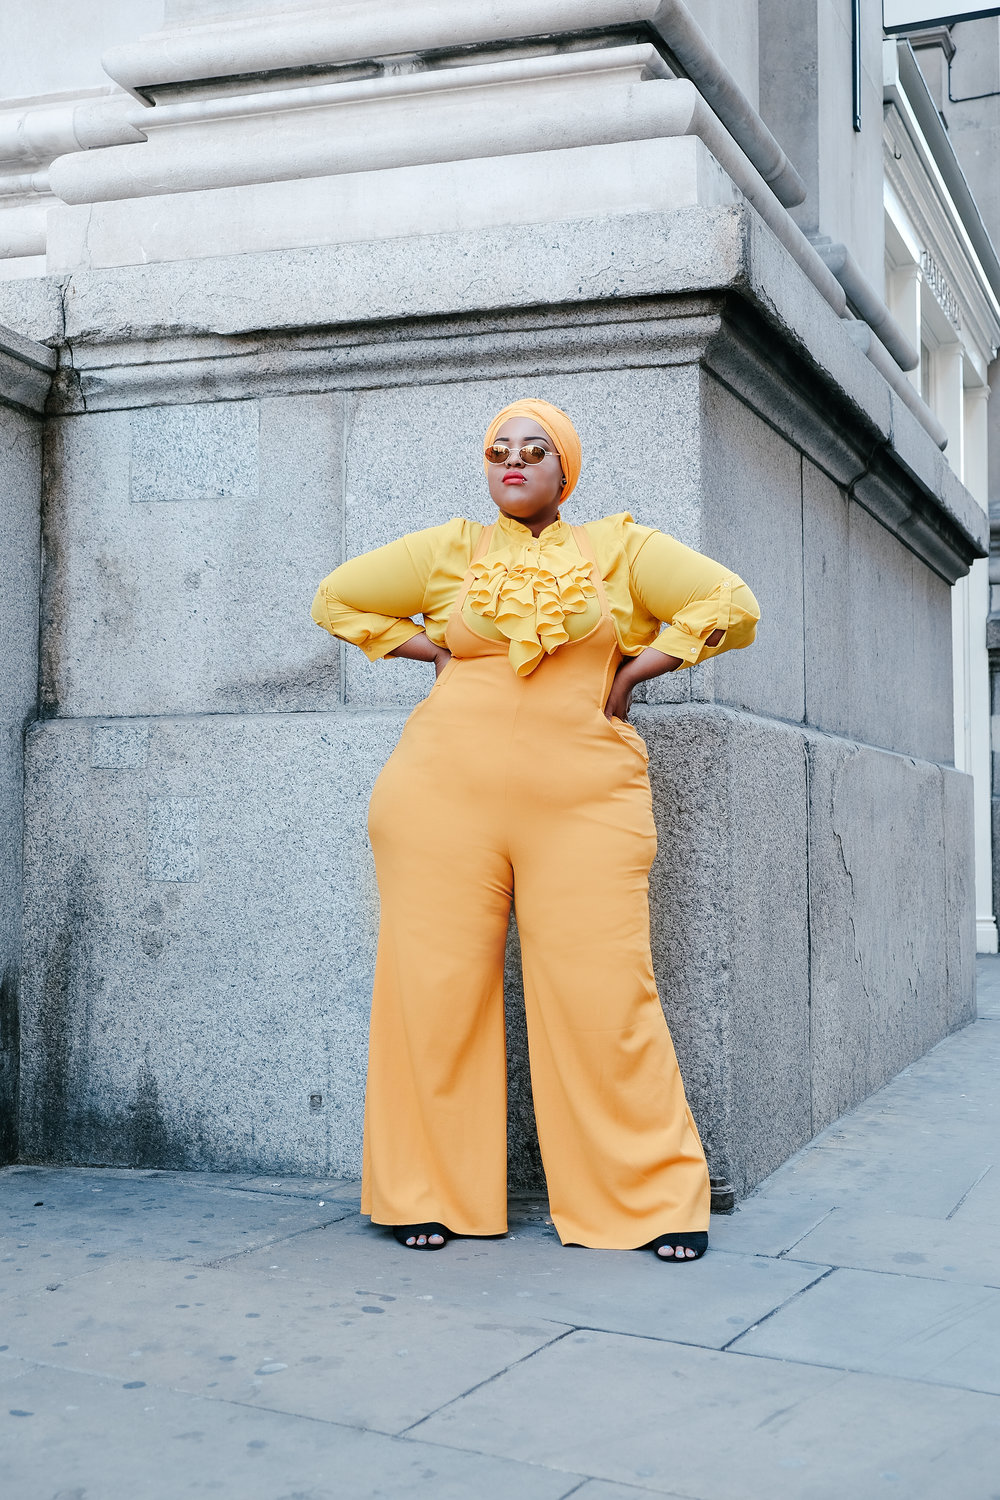 Leah-Vernon-Plus-Size-Body-Positive-Model-Detroit-Muslim-Girl-Black-Instagram-Bloggers-4.JPG